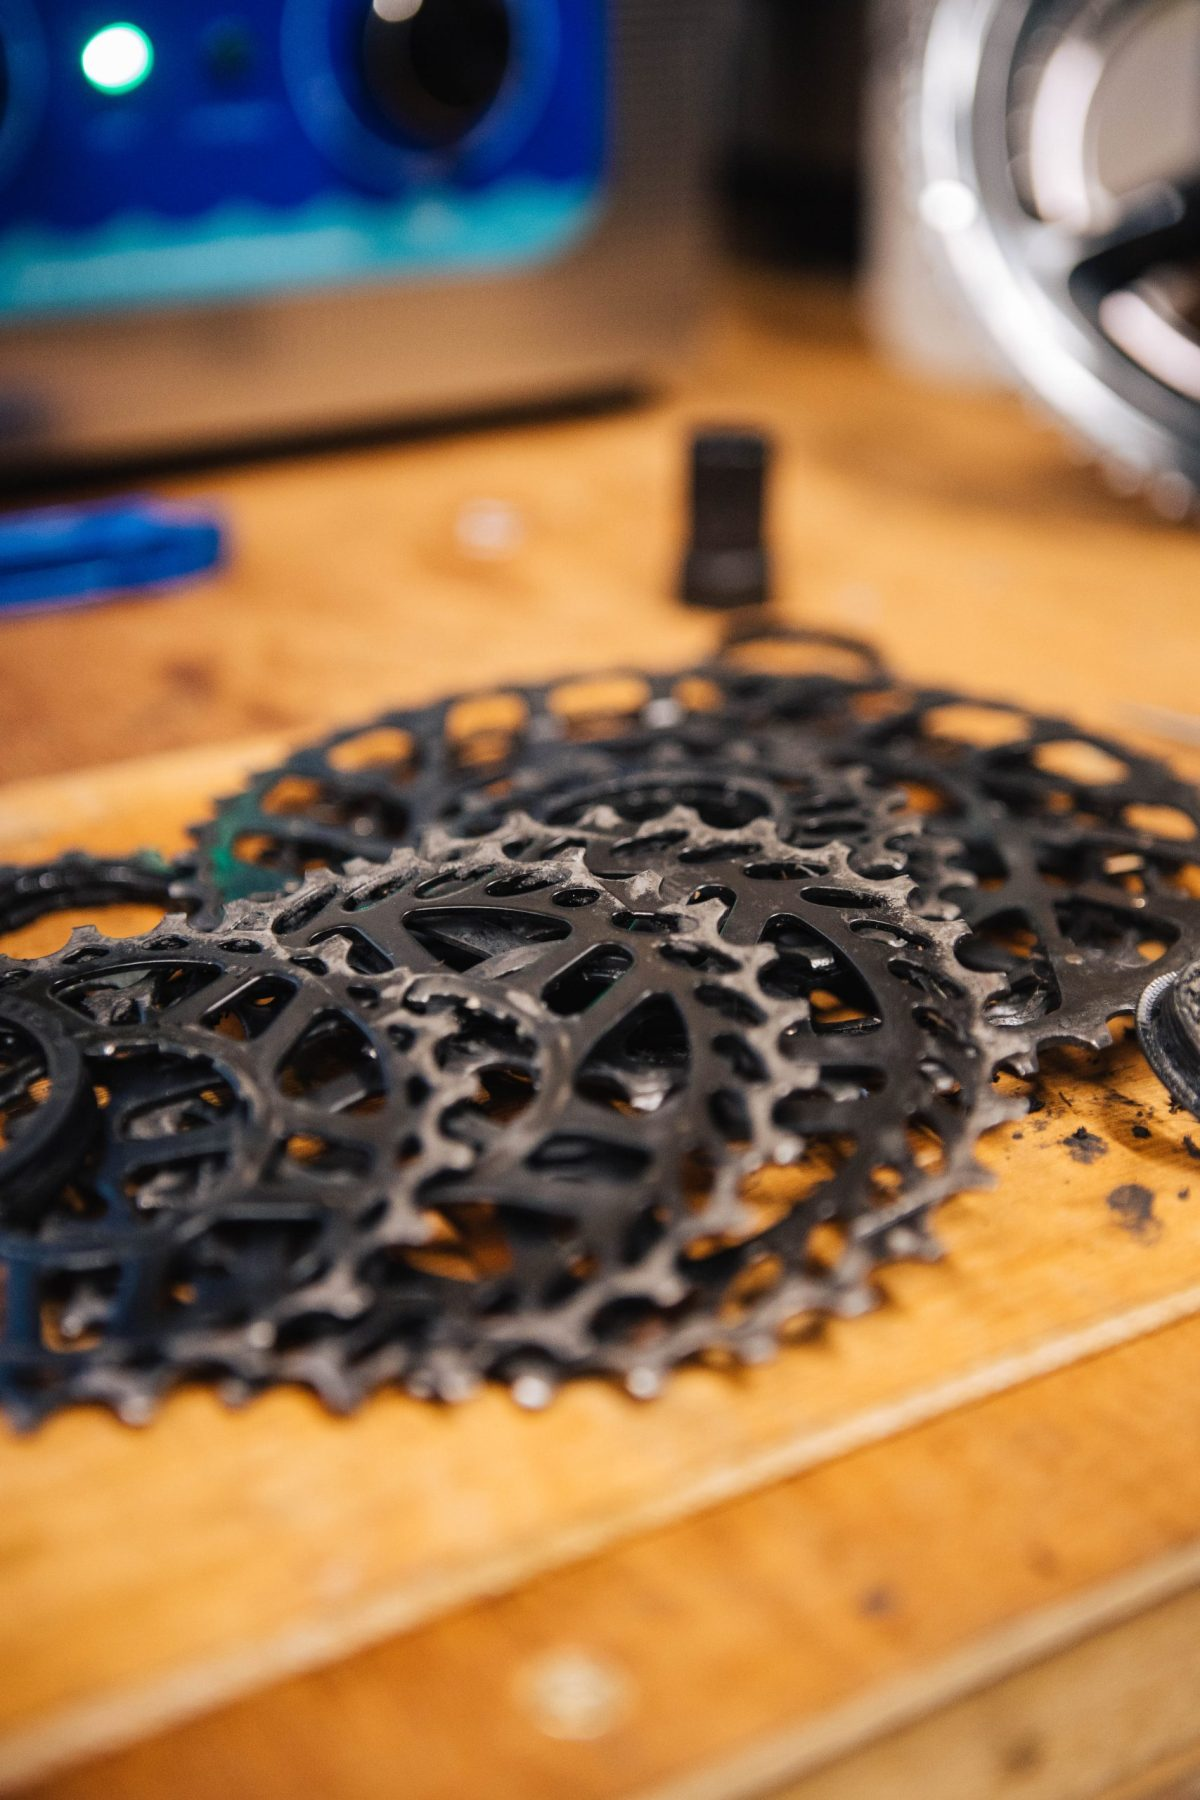 Cleaning Cassette